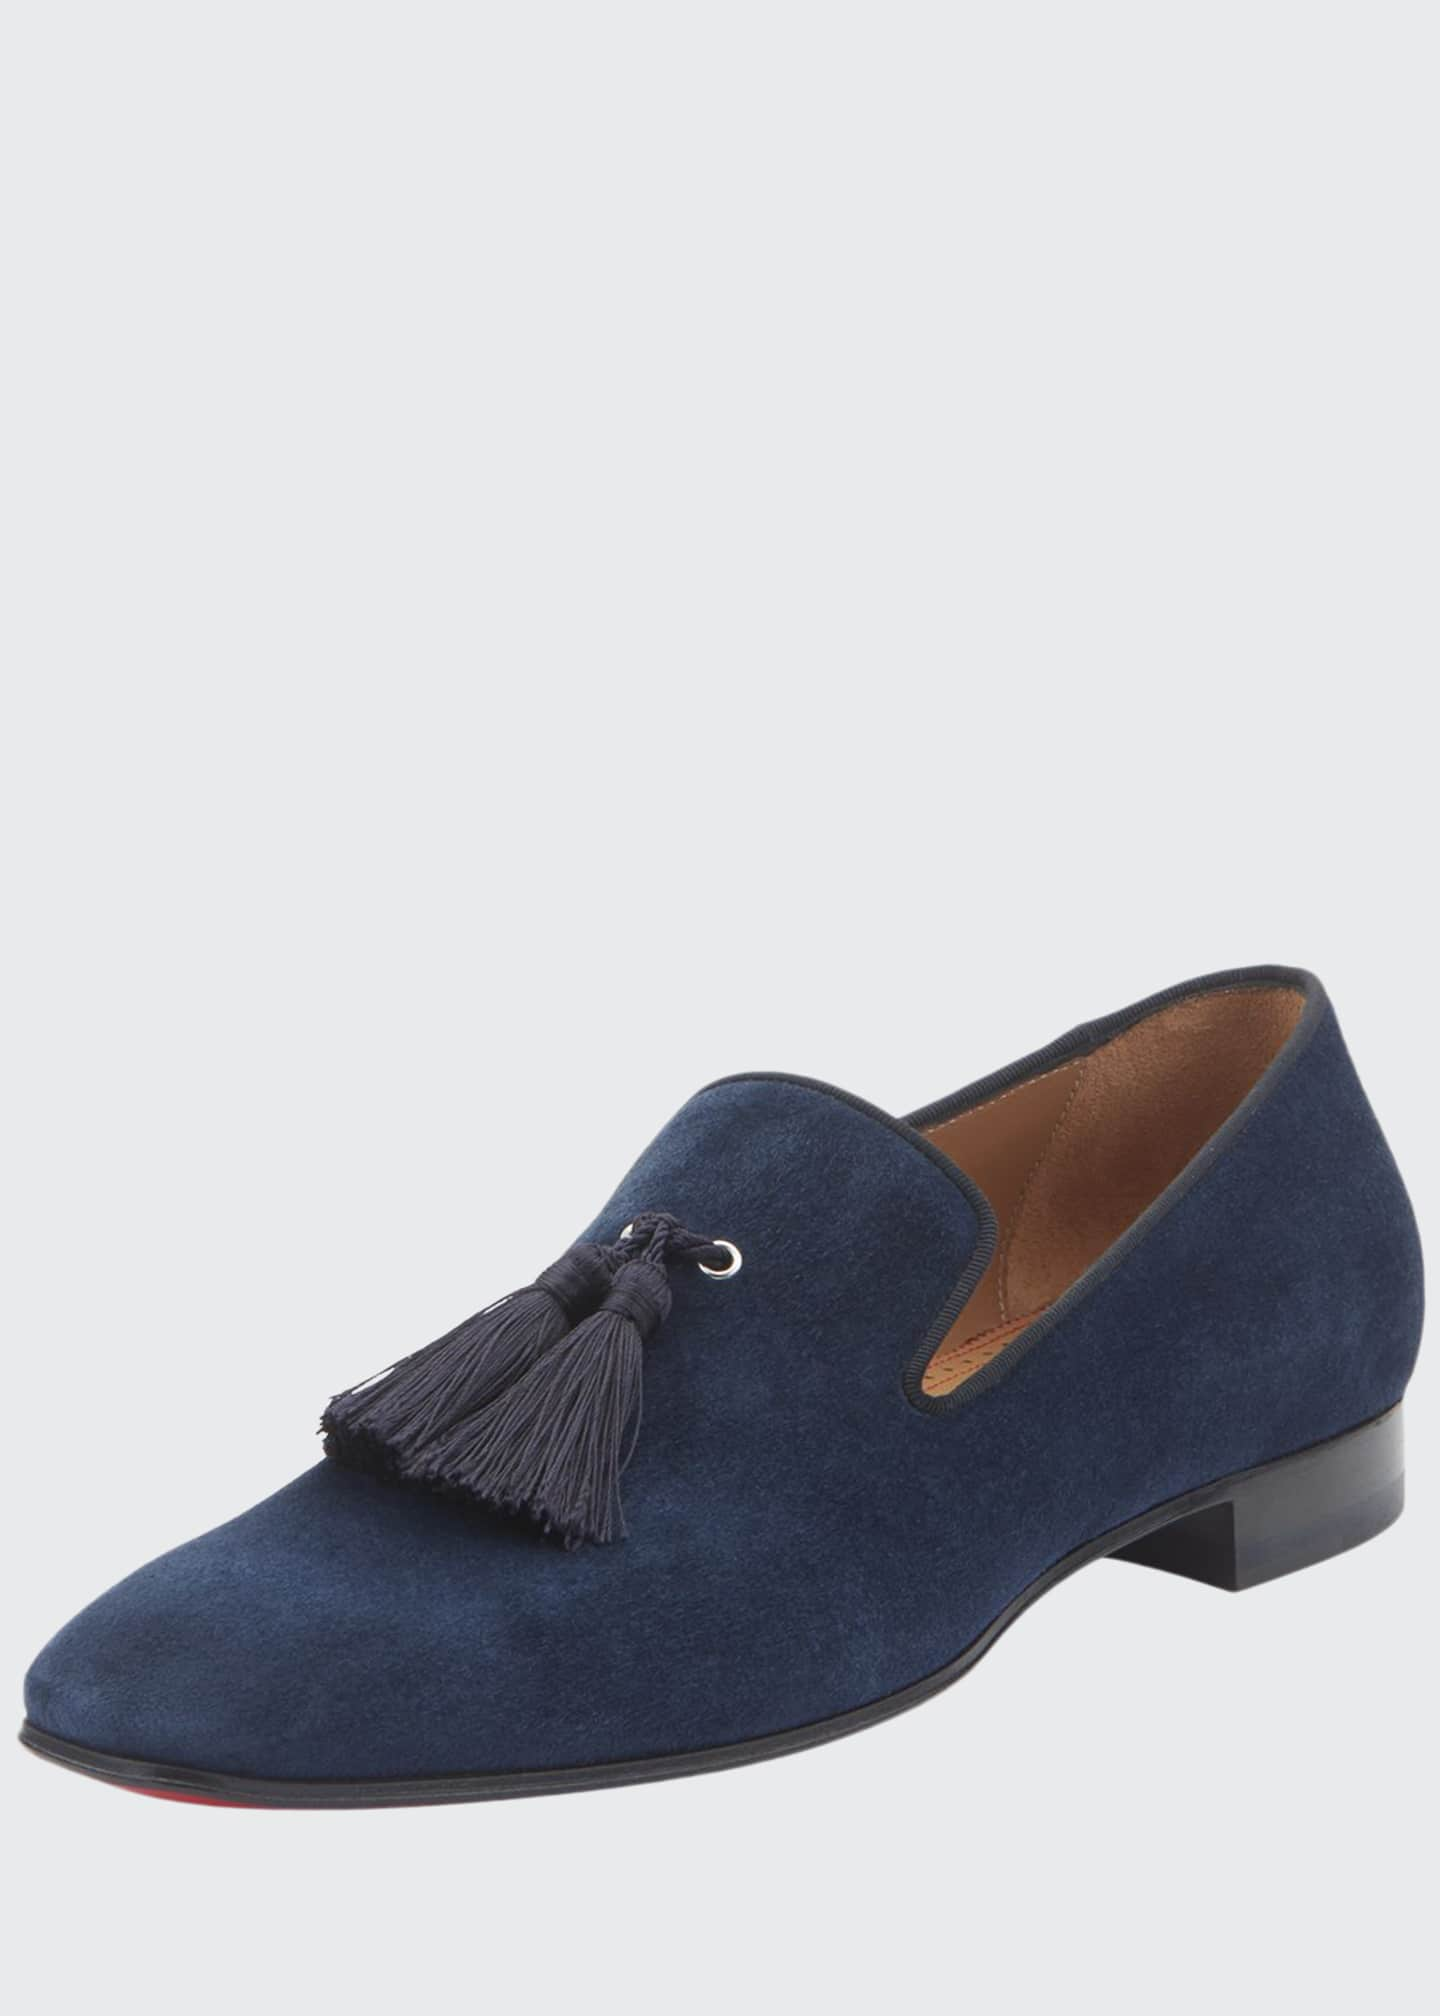 Image 1 of 3: Men's Velour Suede Tassel Loafers